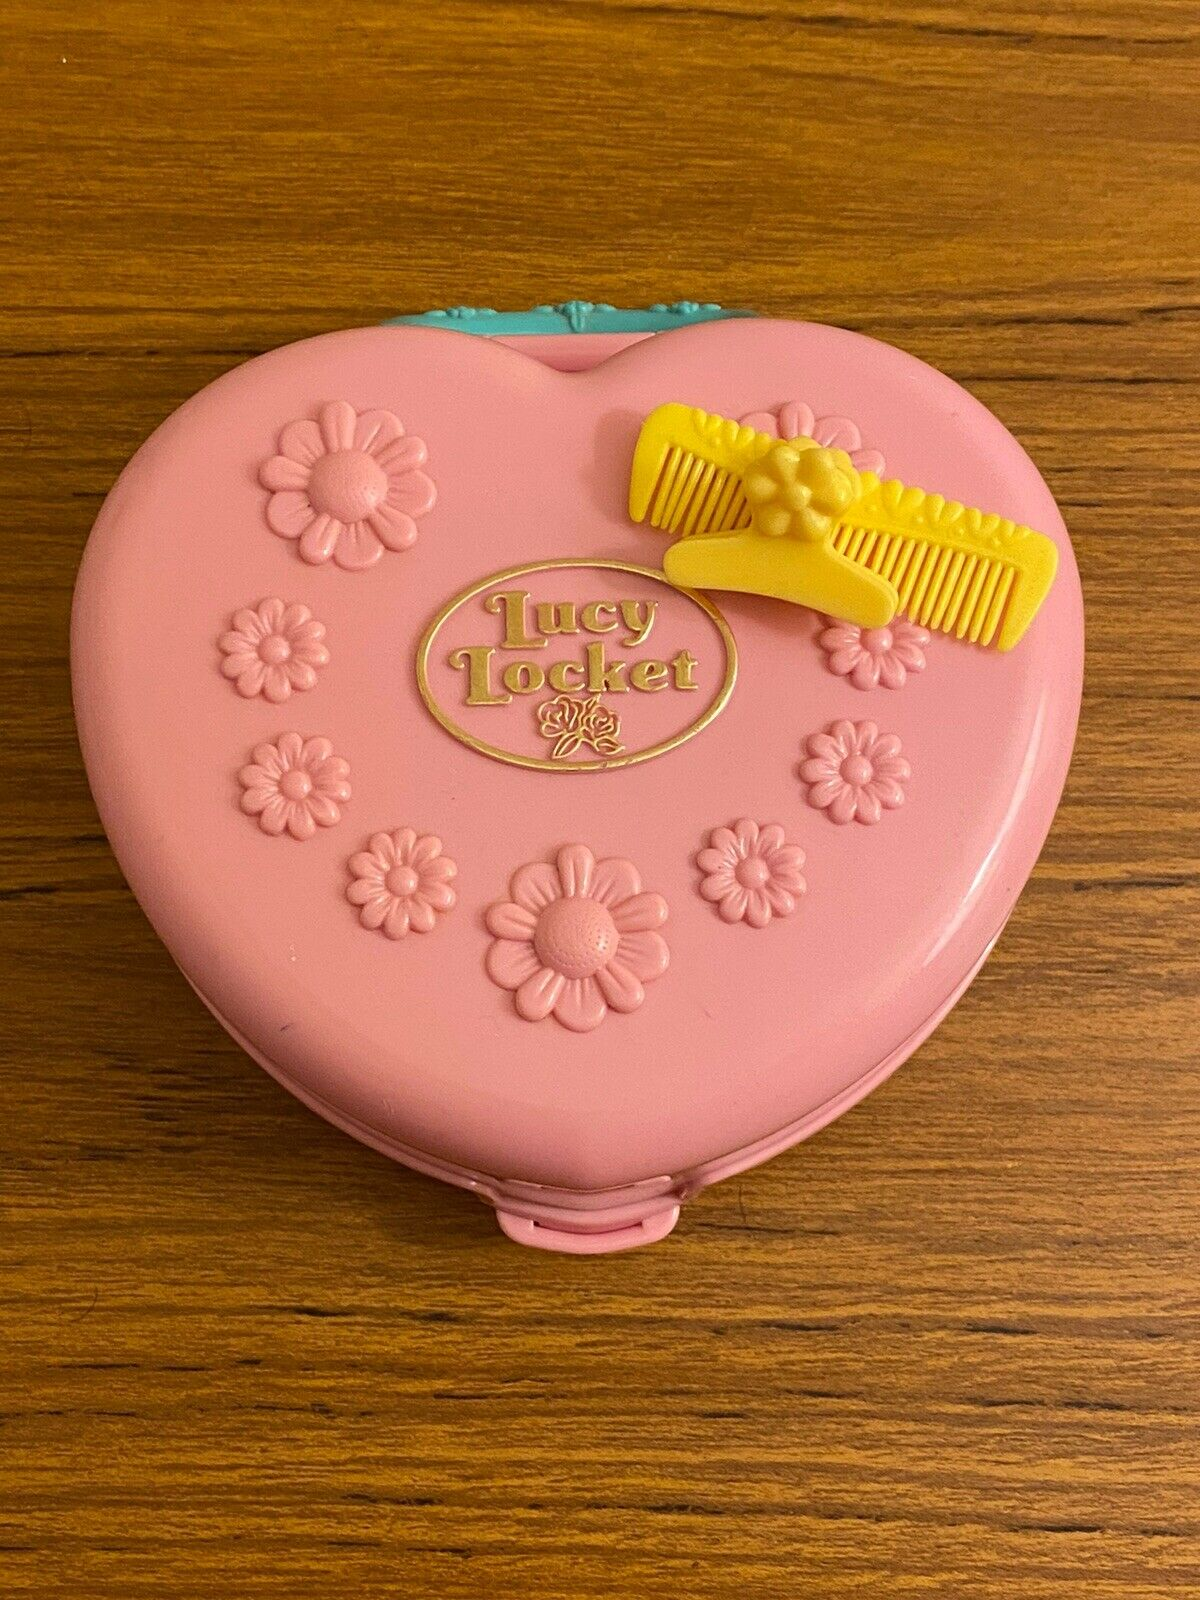 Vintage Lucy Locket ,Polly Pocket Hair Salon Mini Carry Case (rare)